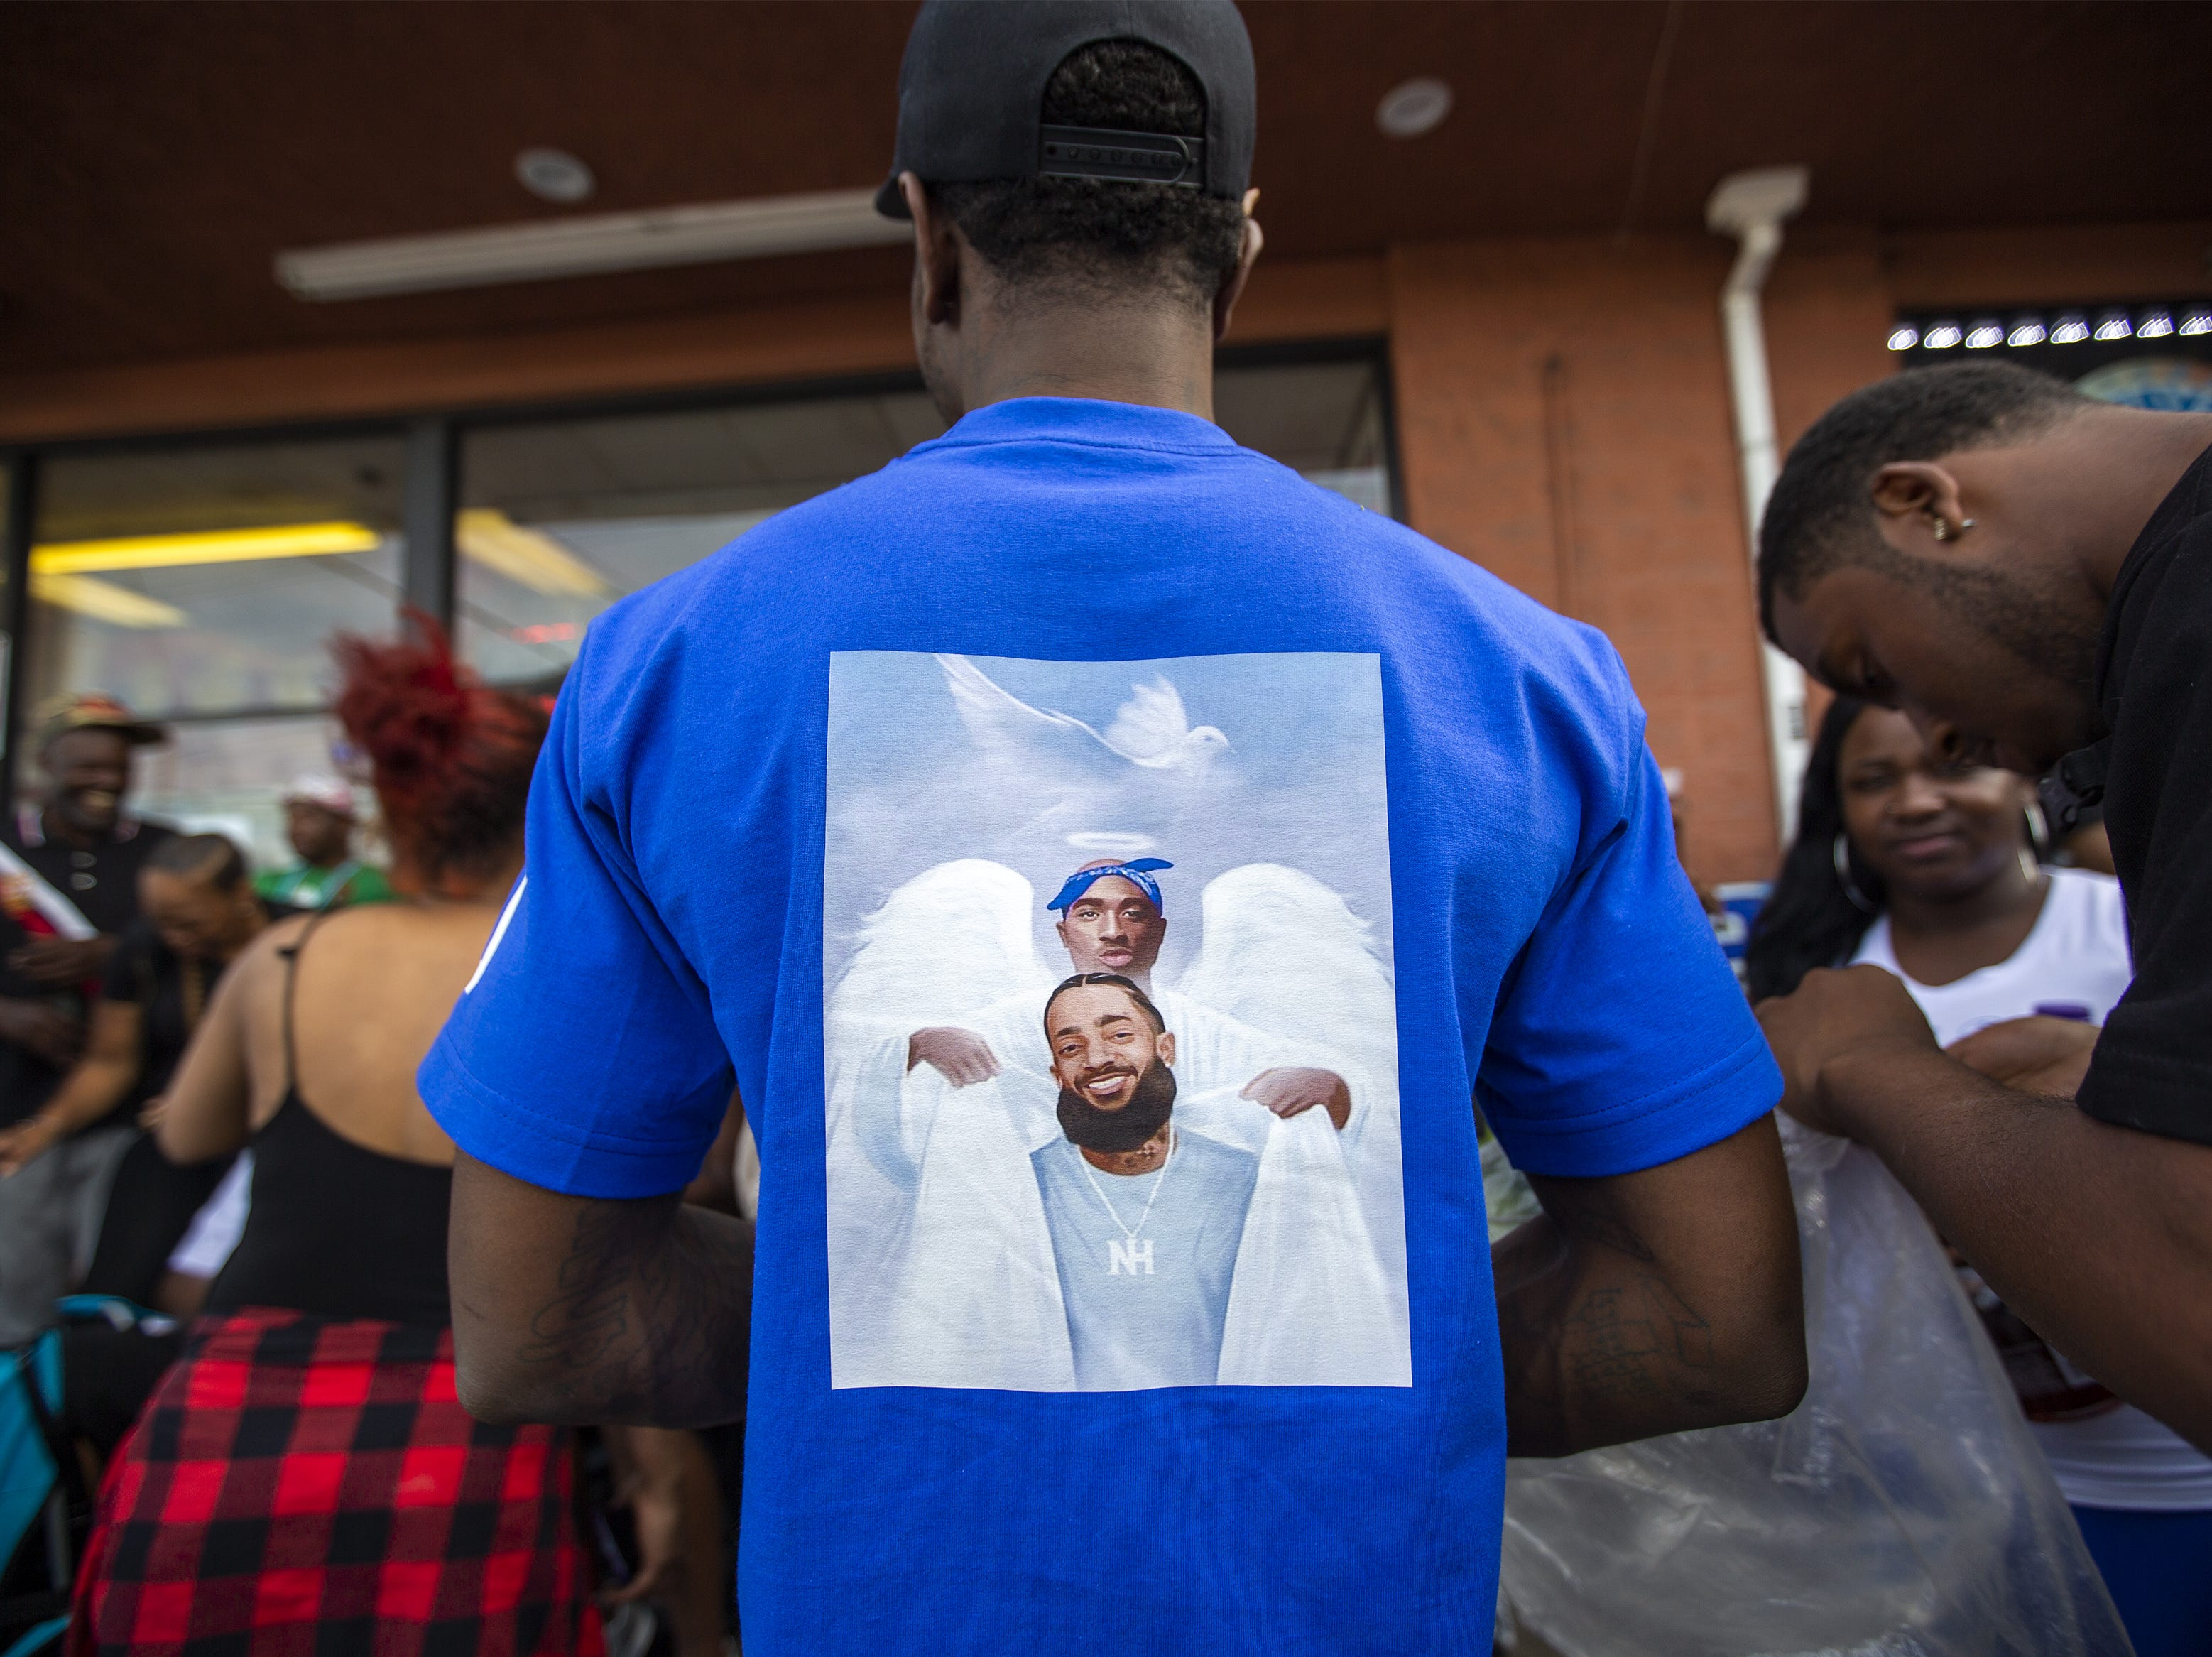 People gather to mourn for rapper Nipsey Hussle, 33, on April 1, 2019 in Los Angeles, Calif.